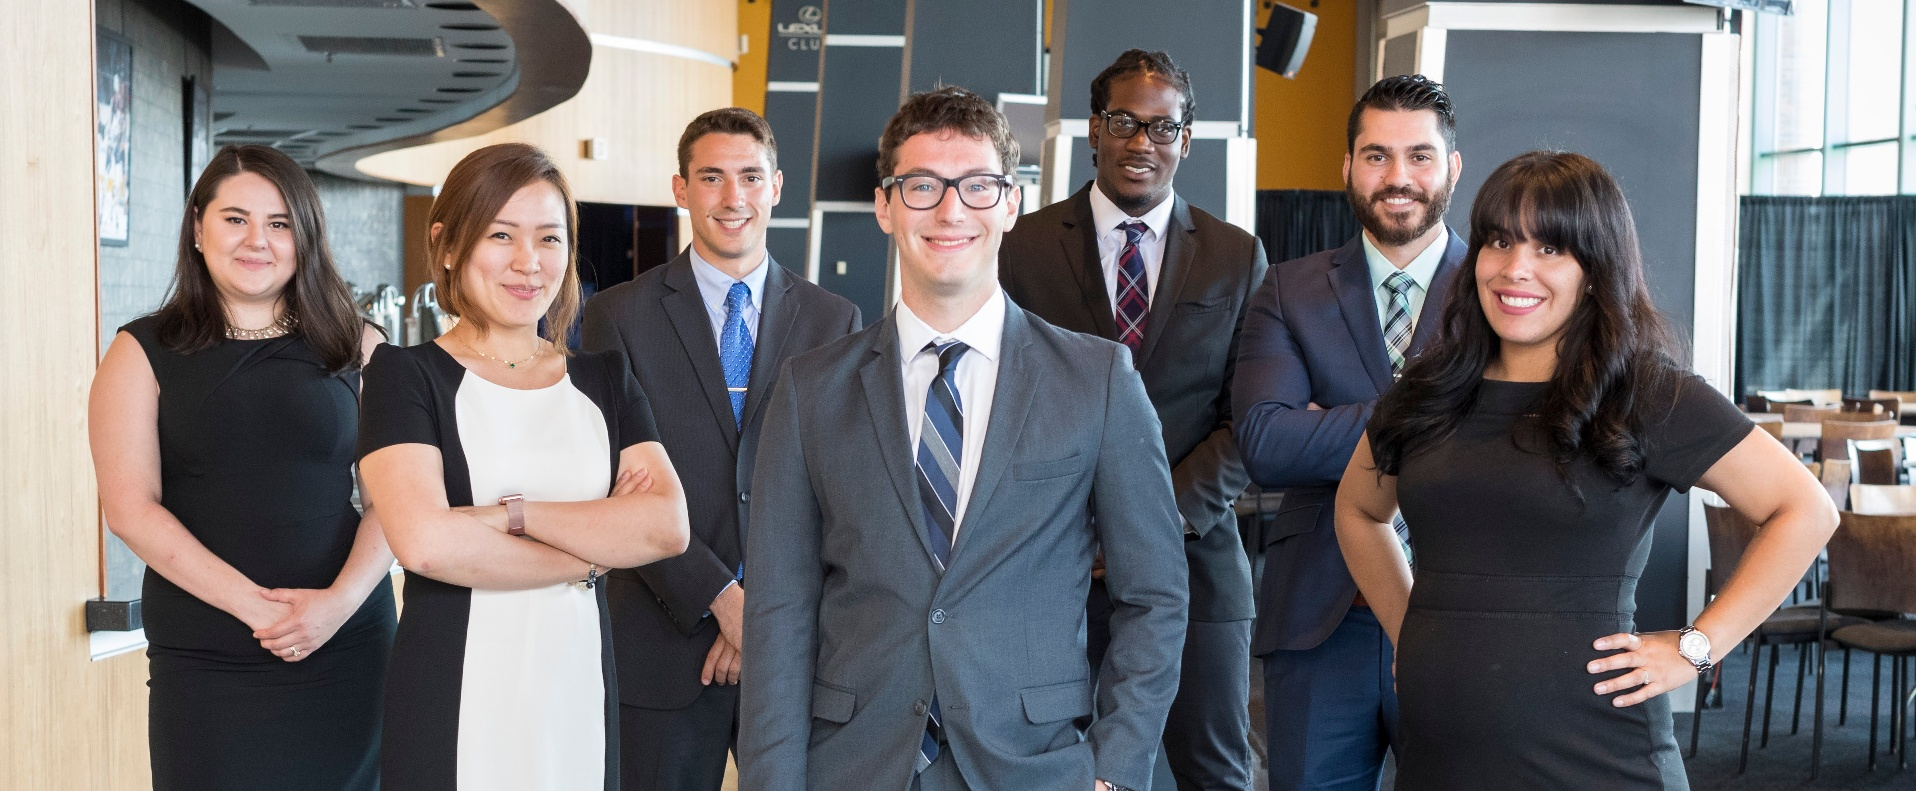 Seven MBA students dressed in professional business attire standing and looking at the camera.